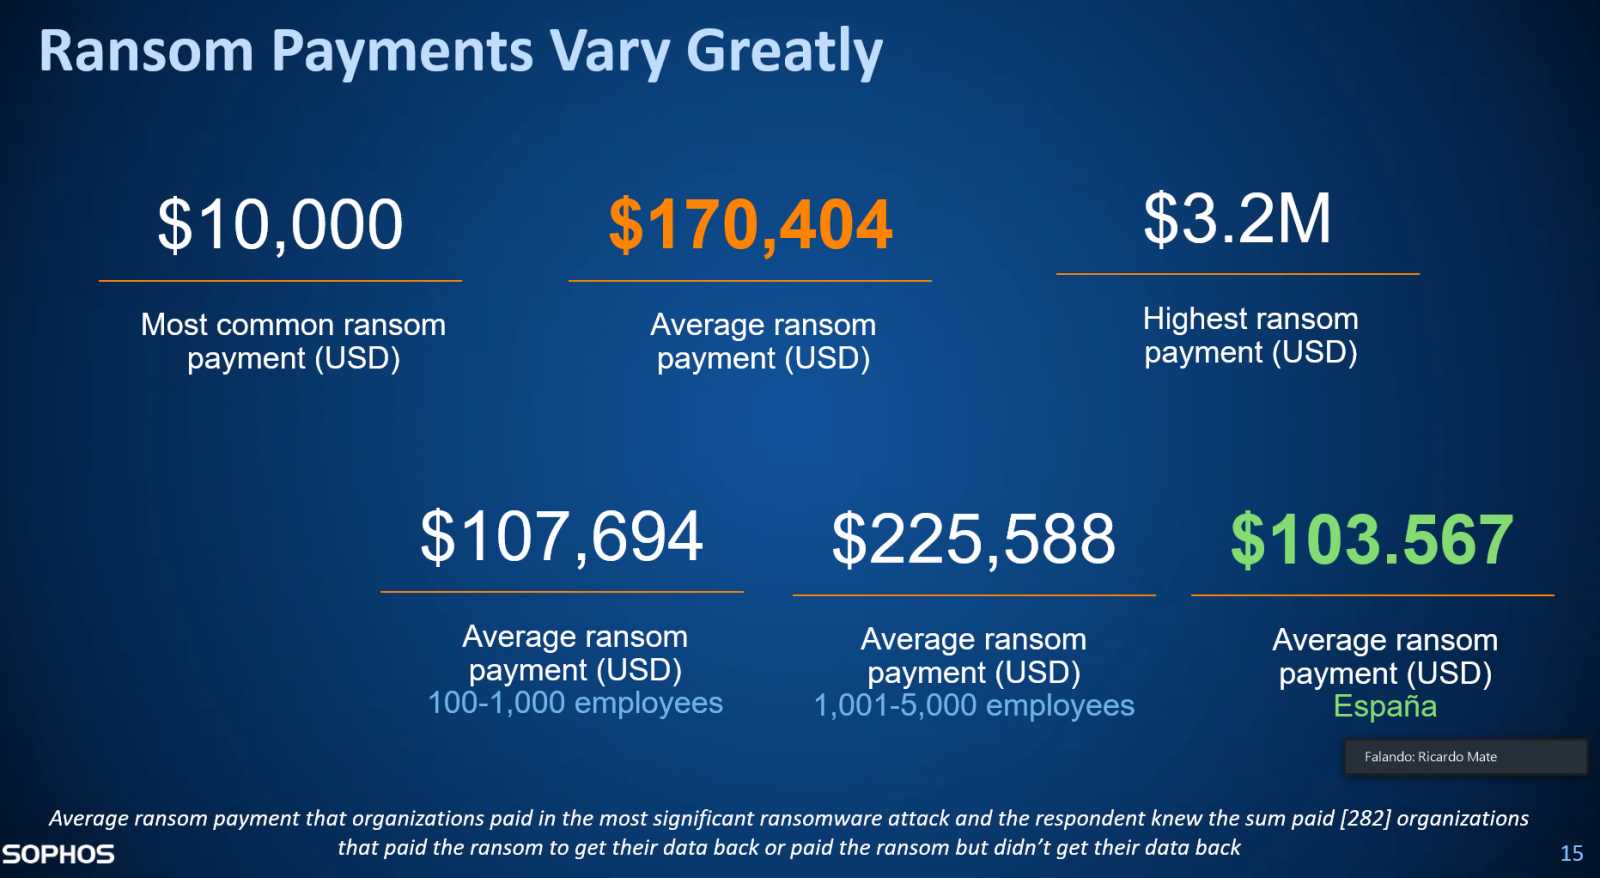 Ransom Payments Vary Greatly  $10,000  Most common ransom  payment (USD)  $170,404  Average ransom  payment (USD)  $107,694  Average ransom  payment (USD)  100-1 ,000 employees  $225,588  Average ransom  payment (USD)  1 employees  $3.2M  Highest ransom  payment (USD)  $103.567  Average ransom  payment (USD)  Espaäa  F alancb: R i carch Mate  Average ransom payment that organizations paid in the most significant ransomware attack and the respondent knew the sum paid [282] organizations  SOPHOS  that paid the ransom to get their data back or paid the ransom but didn't get their data back  15